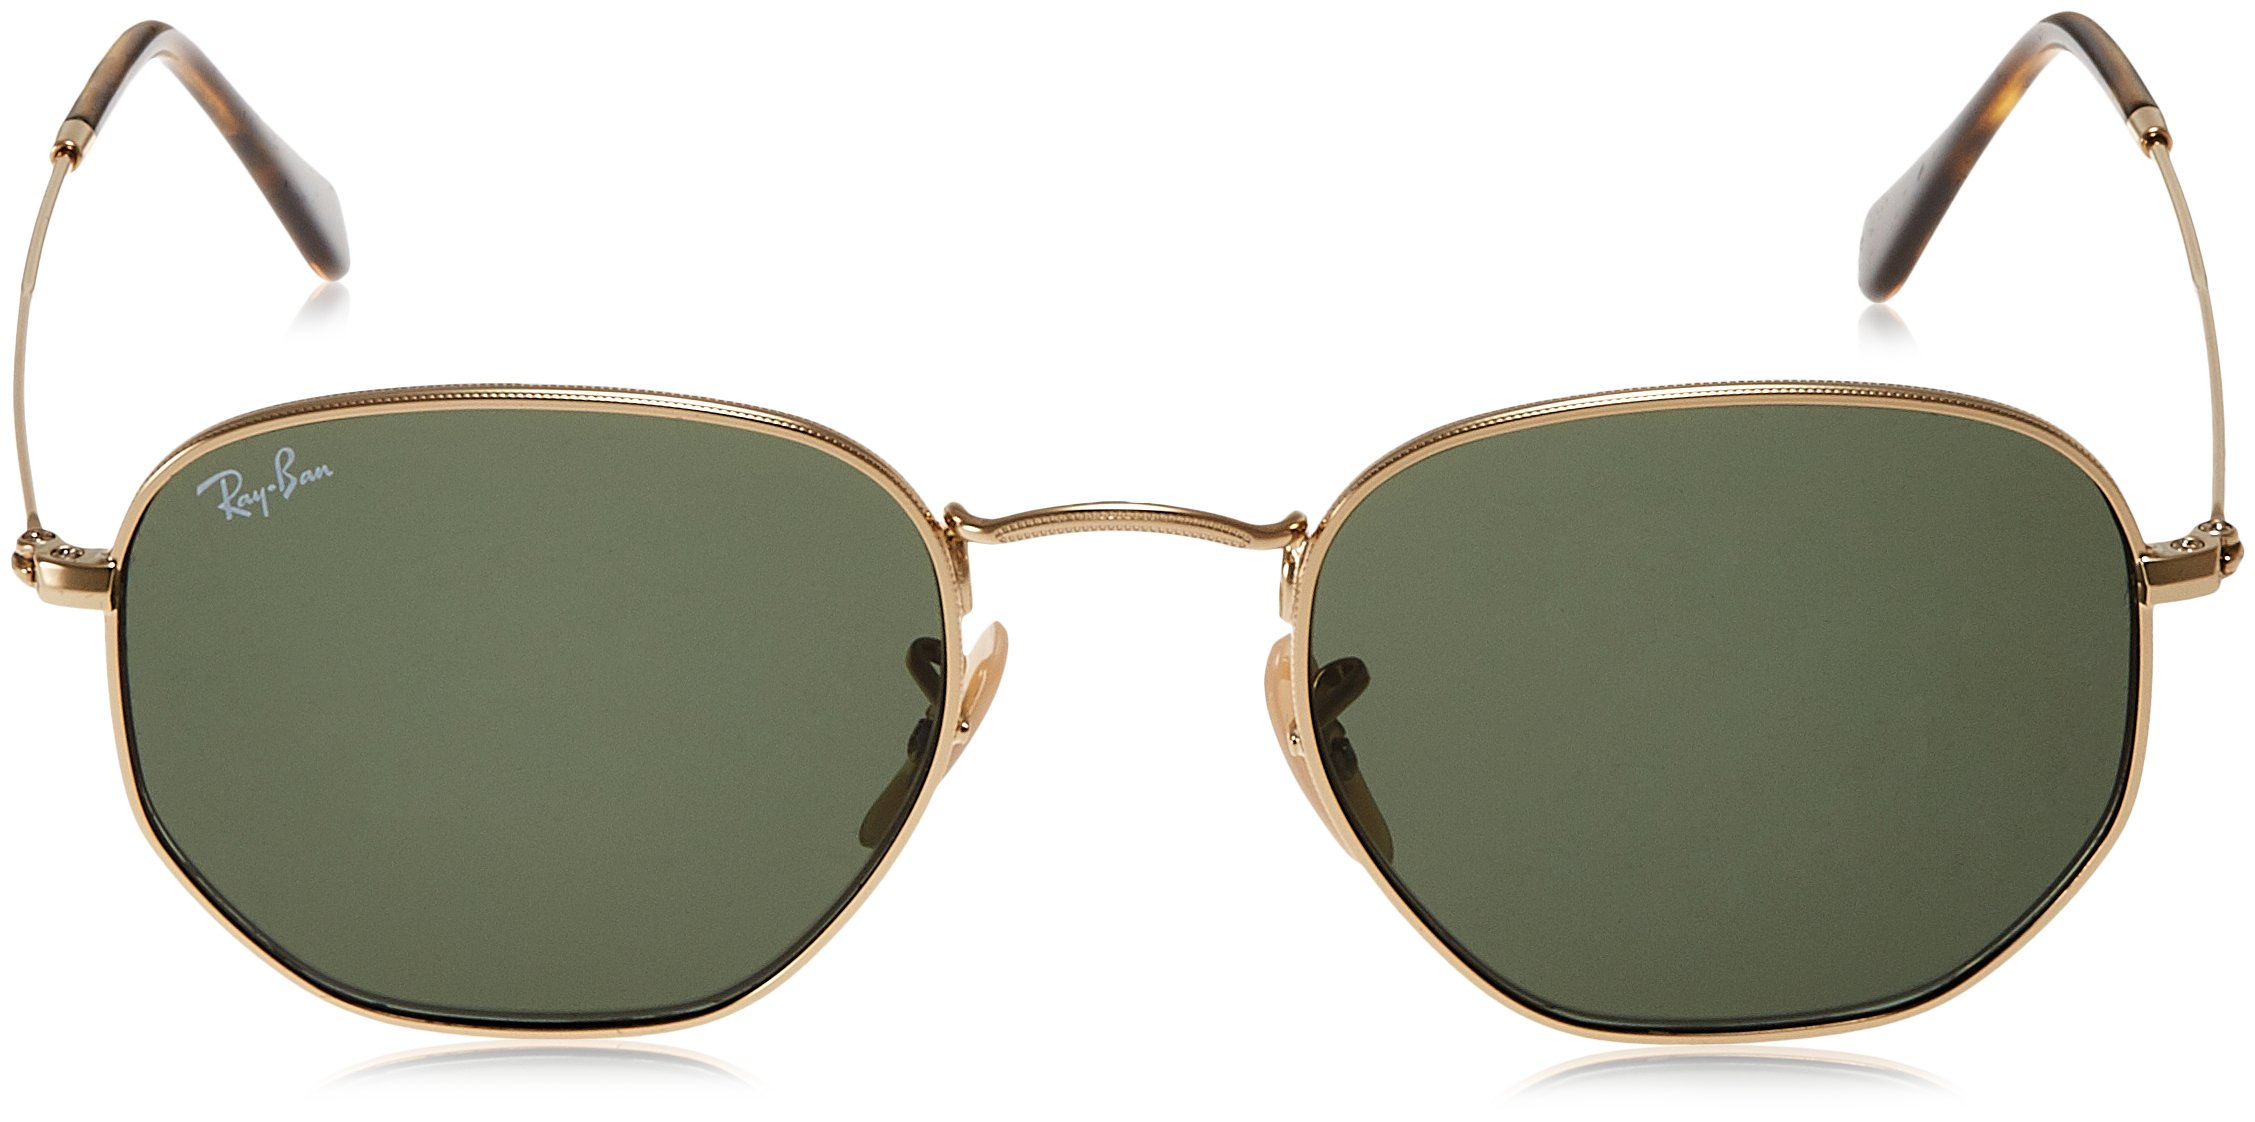 Ray-Ban Unisex RB3548N Hexagonal Sunglasses - Gold Frame Green Lenses, 51 mm by Ray-Ban (Image #2)